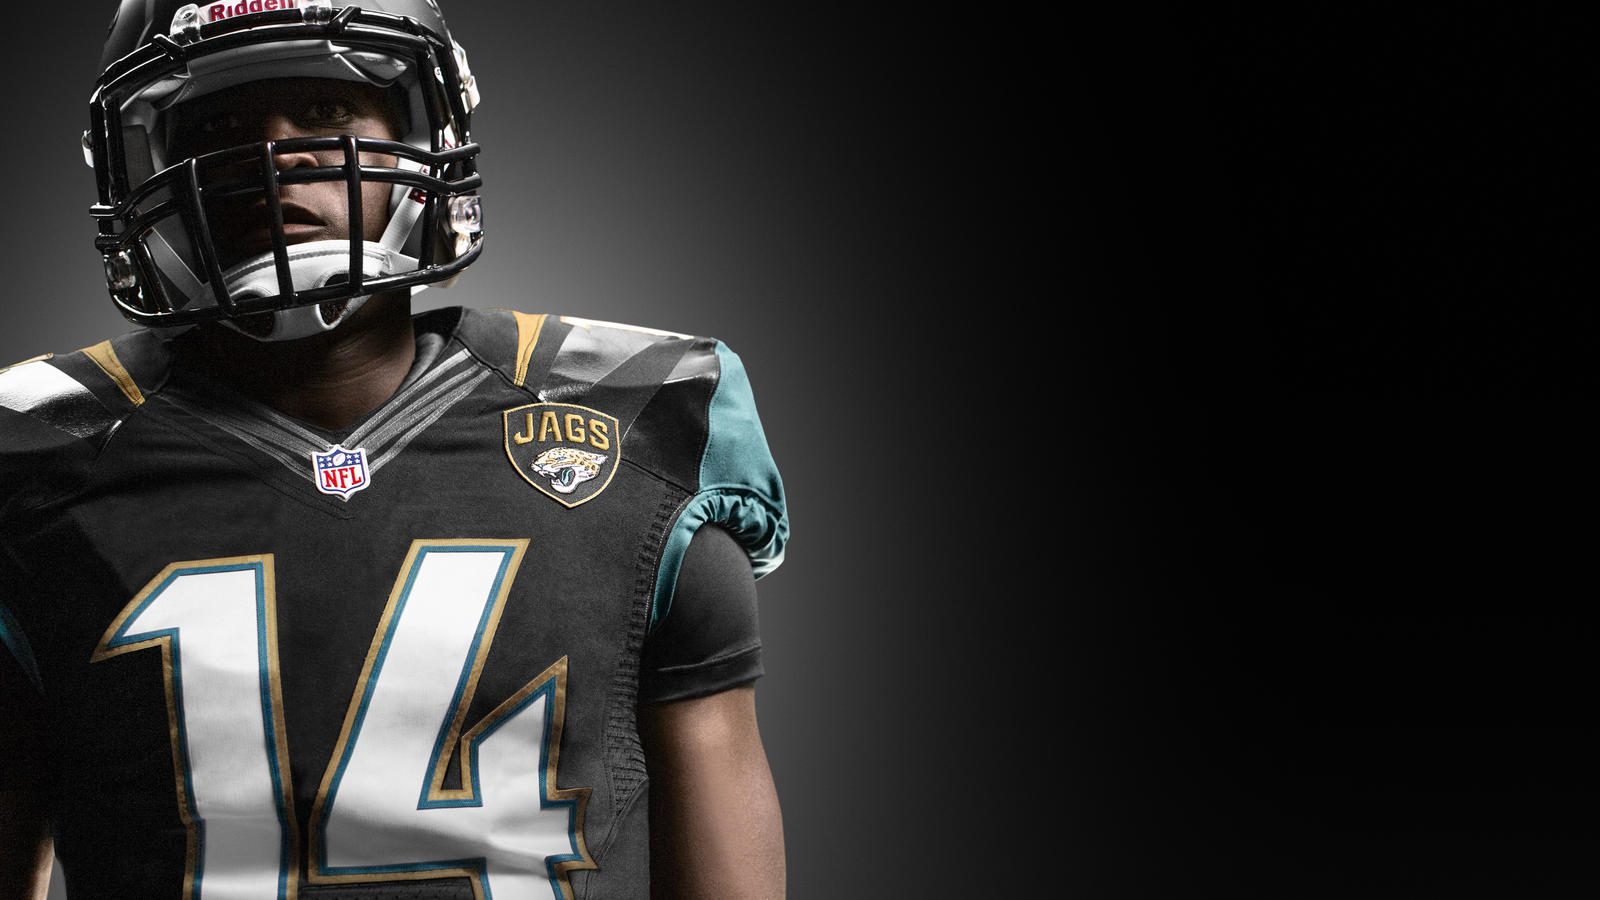 jaguars-blackmon-nfl-nike-elite-51-uniform-4